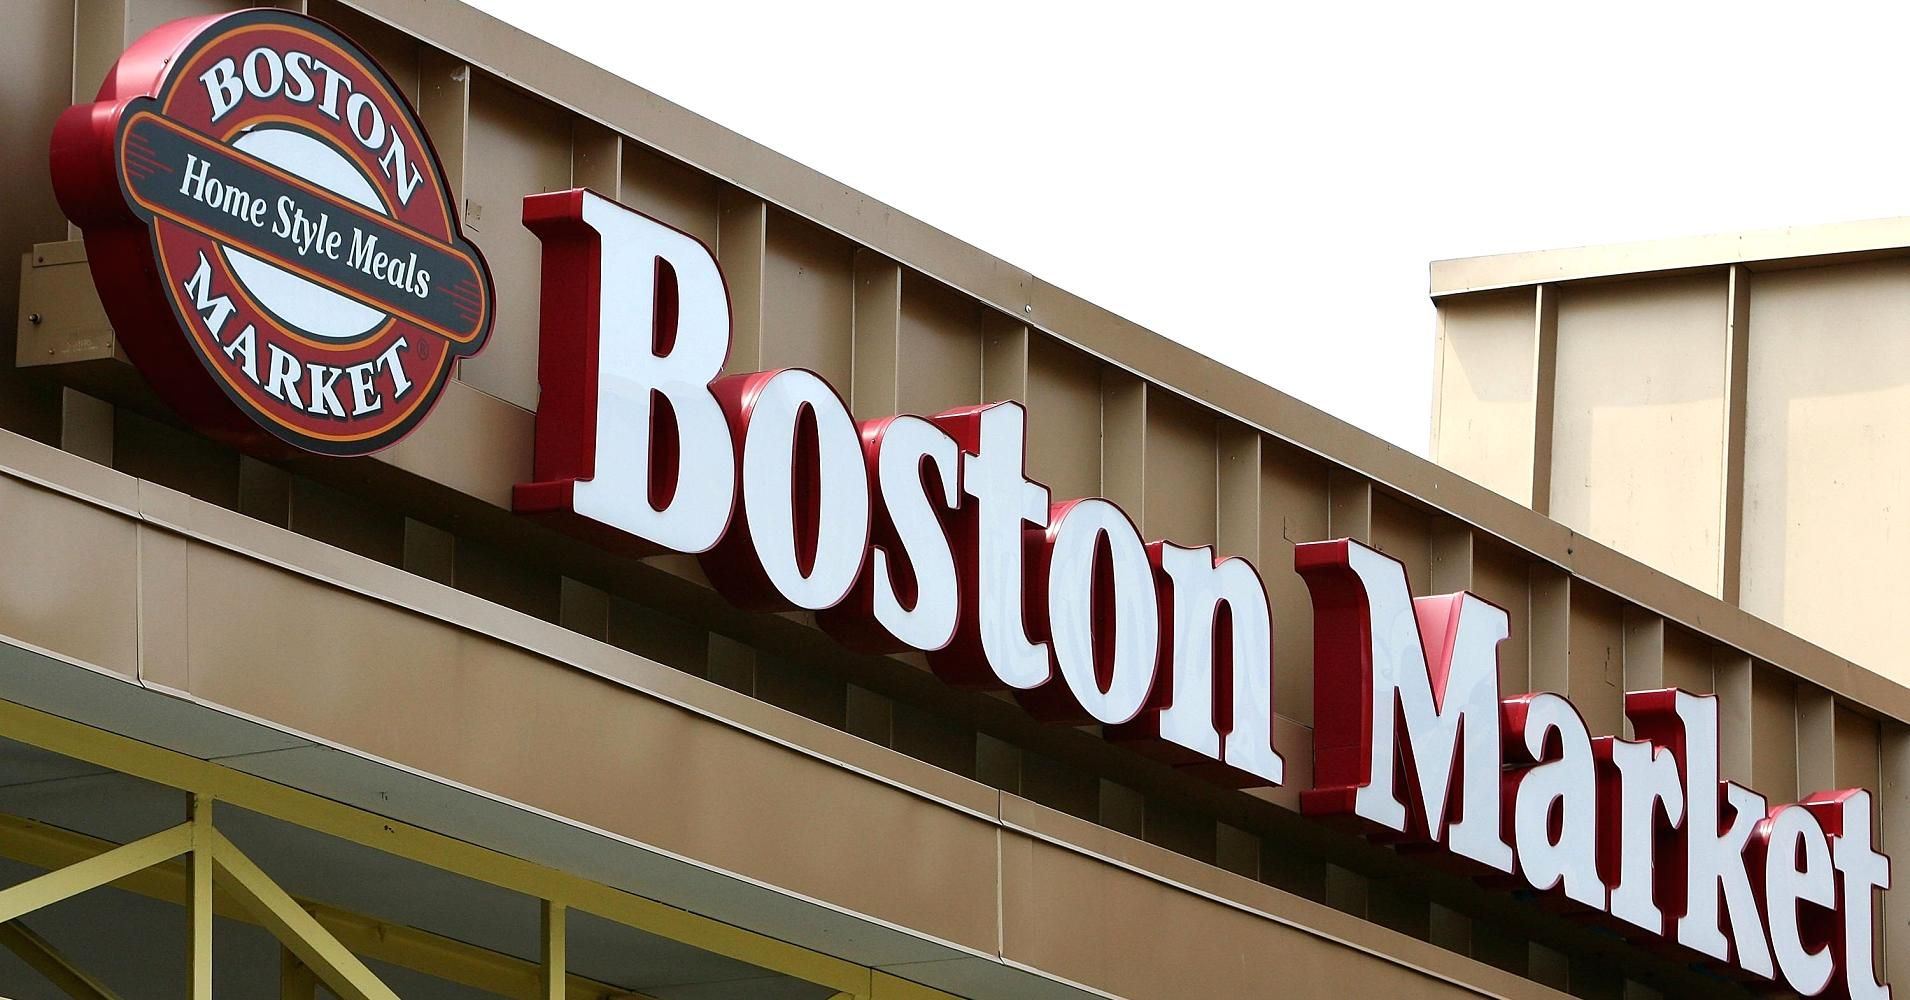 Boston Market could be sold for 400 million (With images